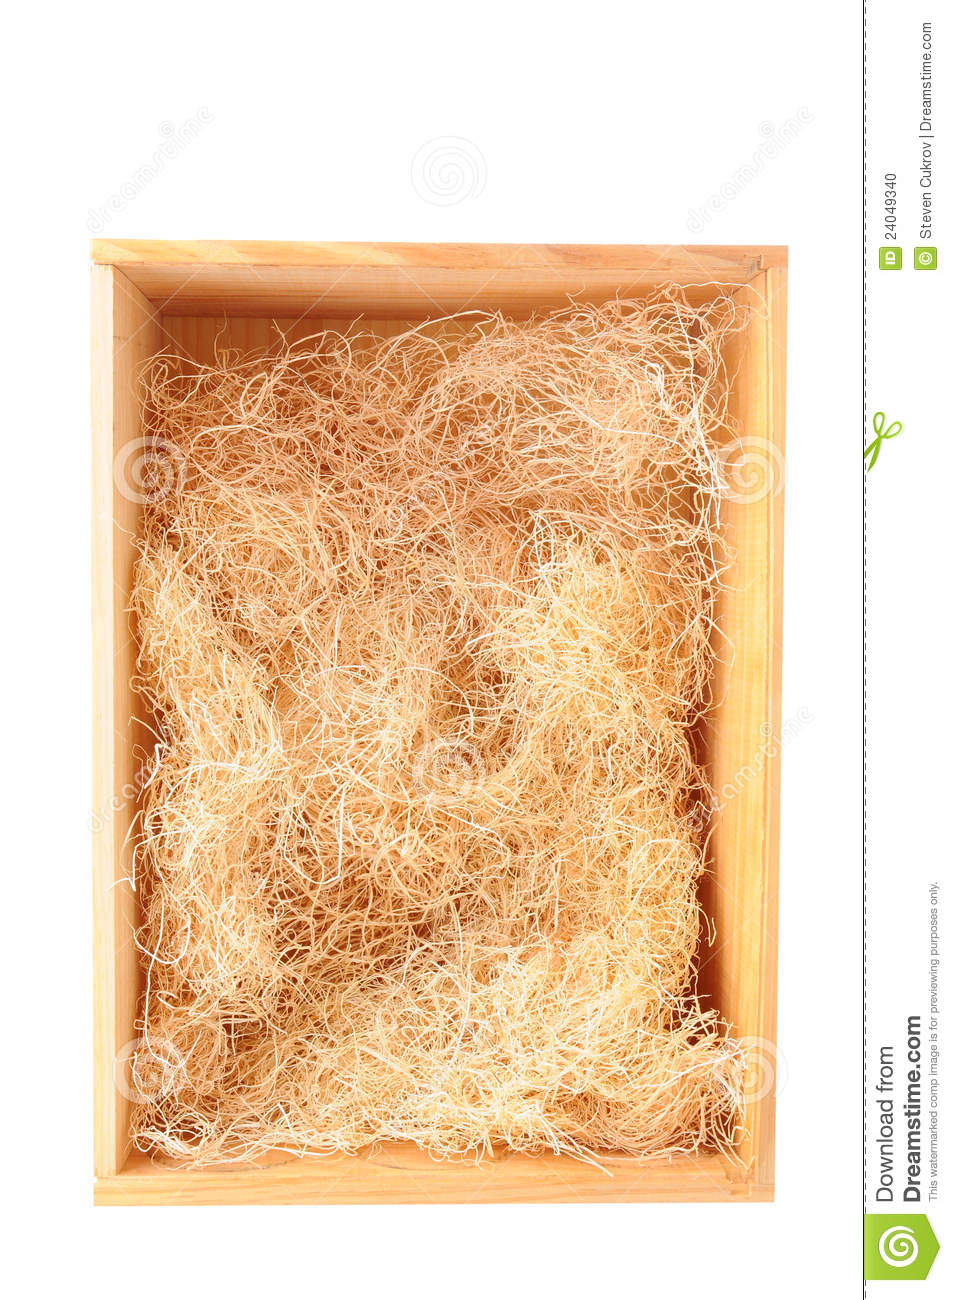 Wood Shipping Box With Straw Stock Photo Image 24049340